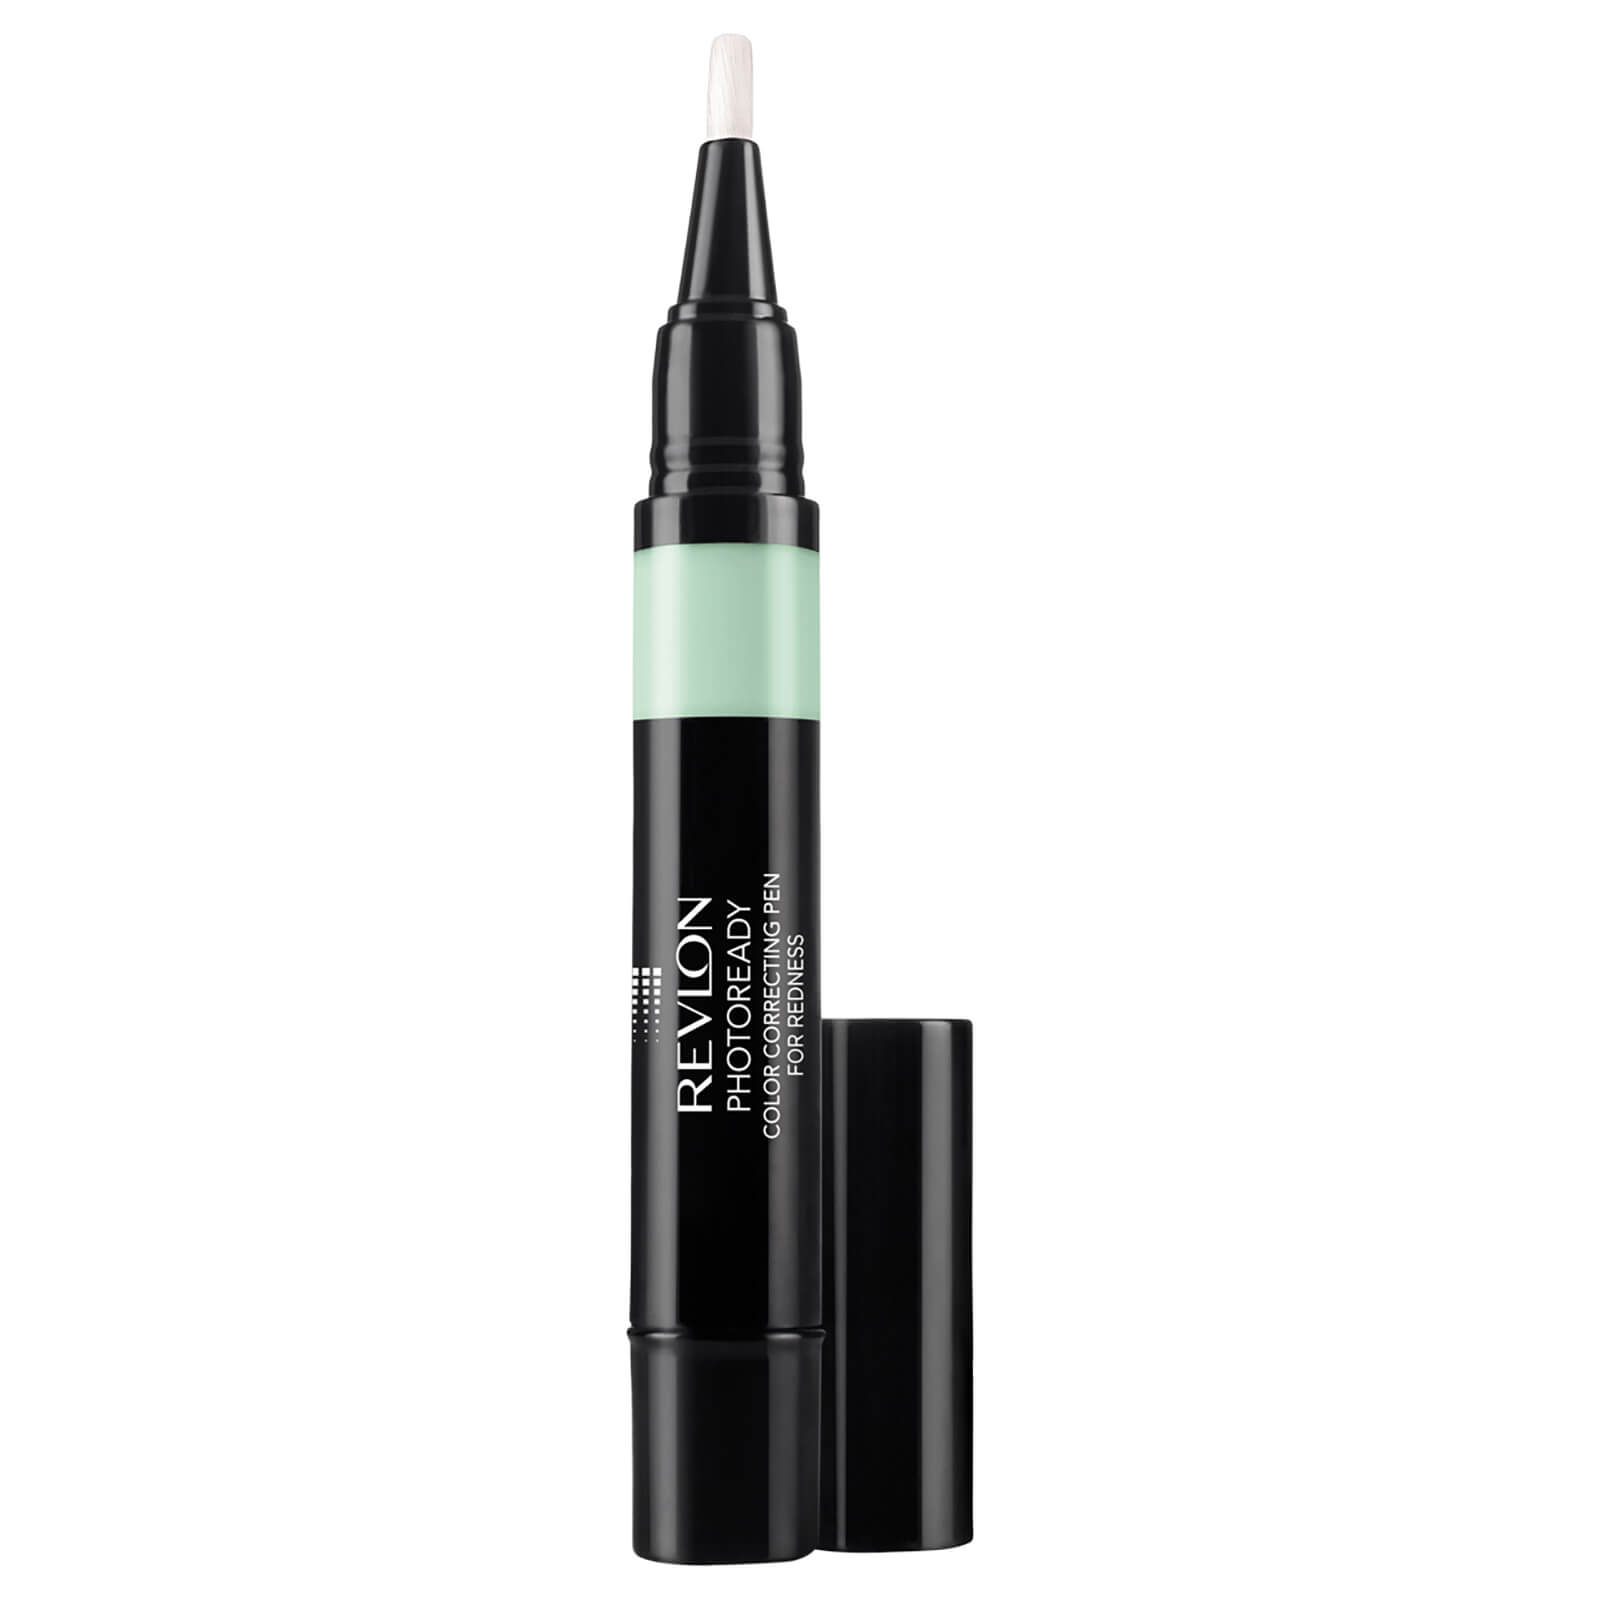 Lápiz corrector verde para rojeces Revlon Photo Ready.